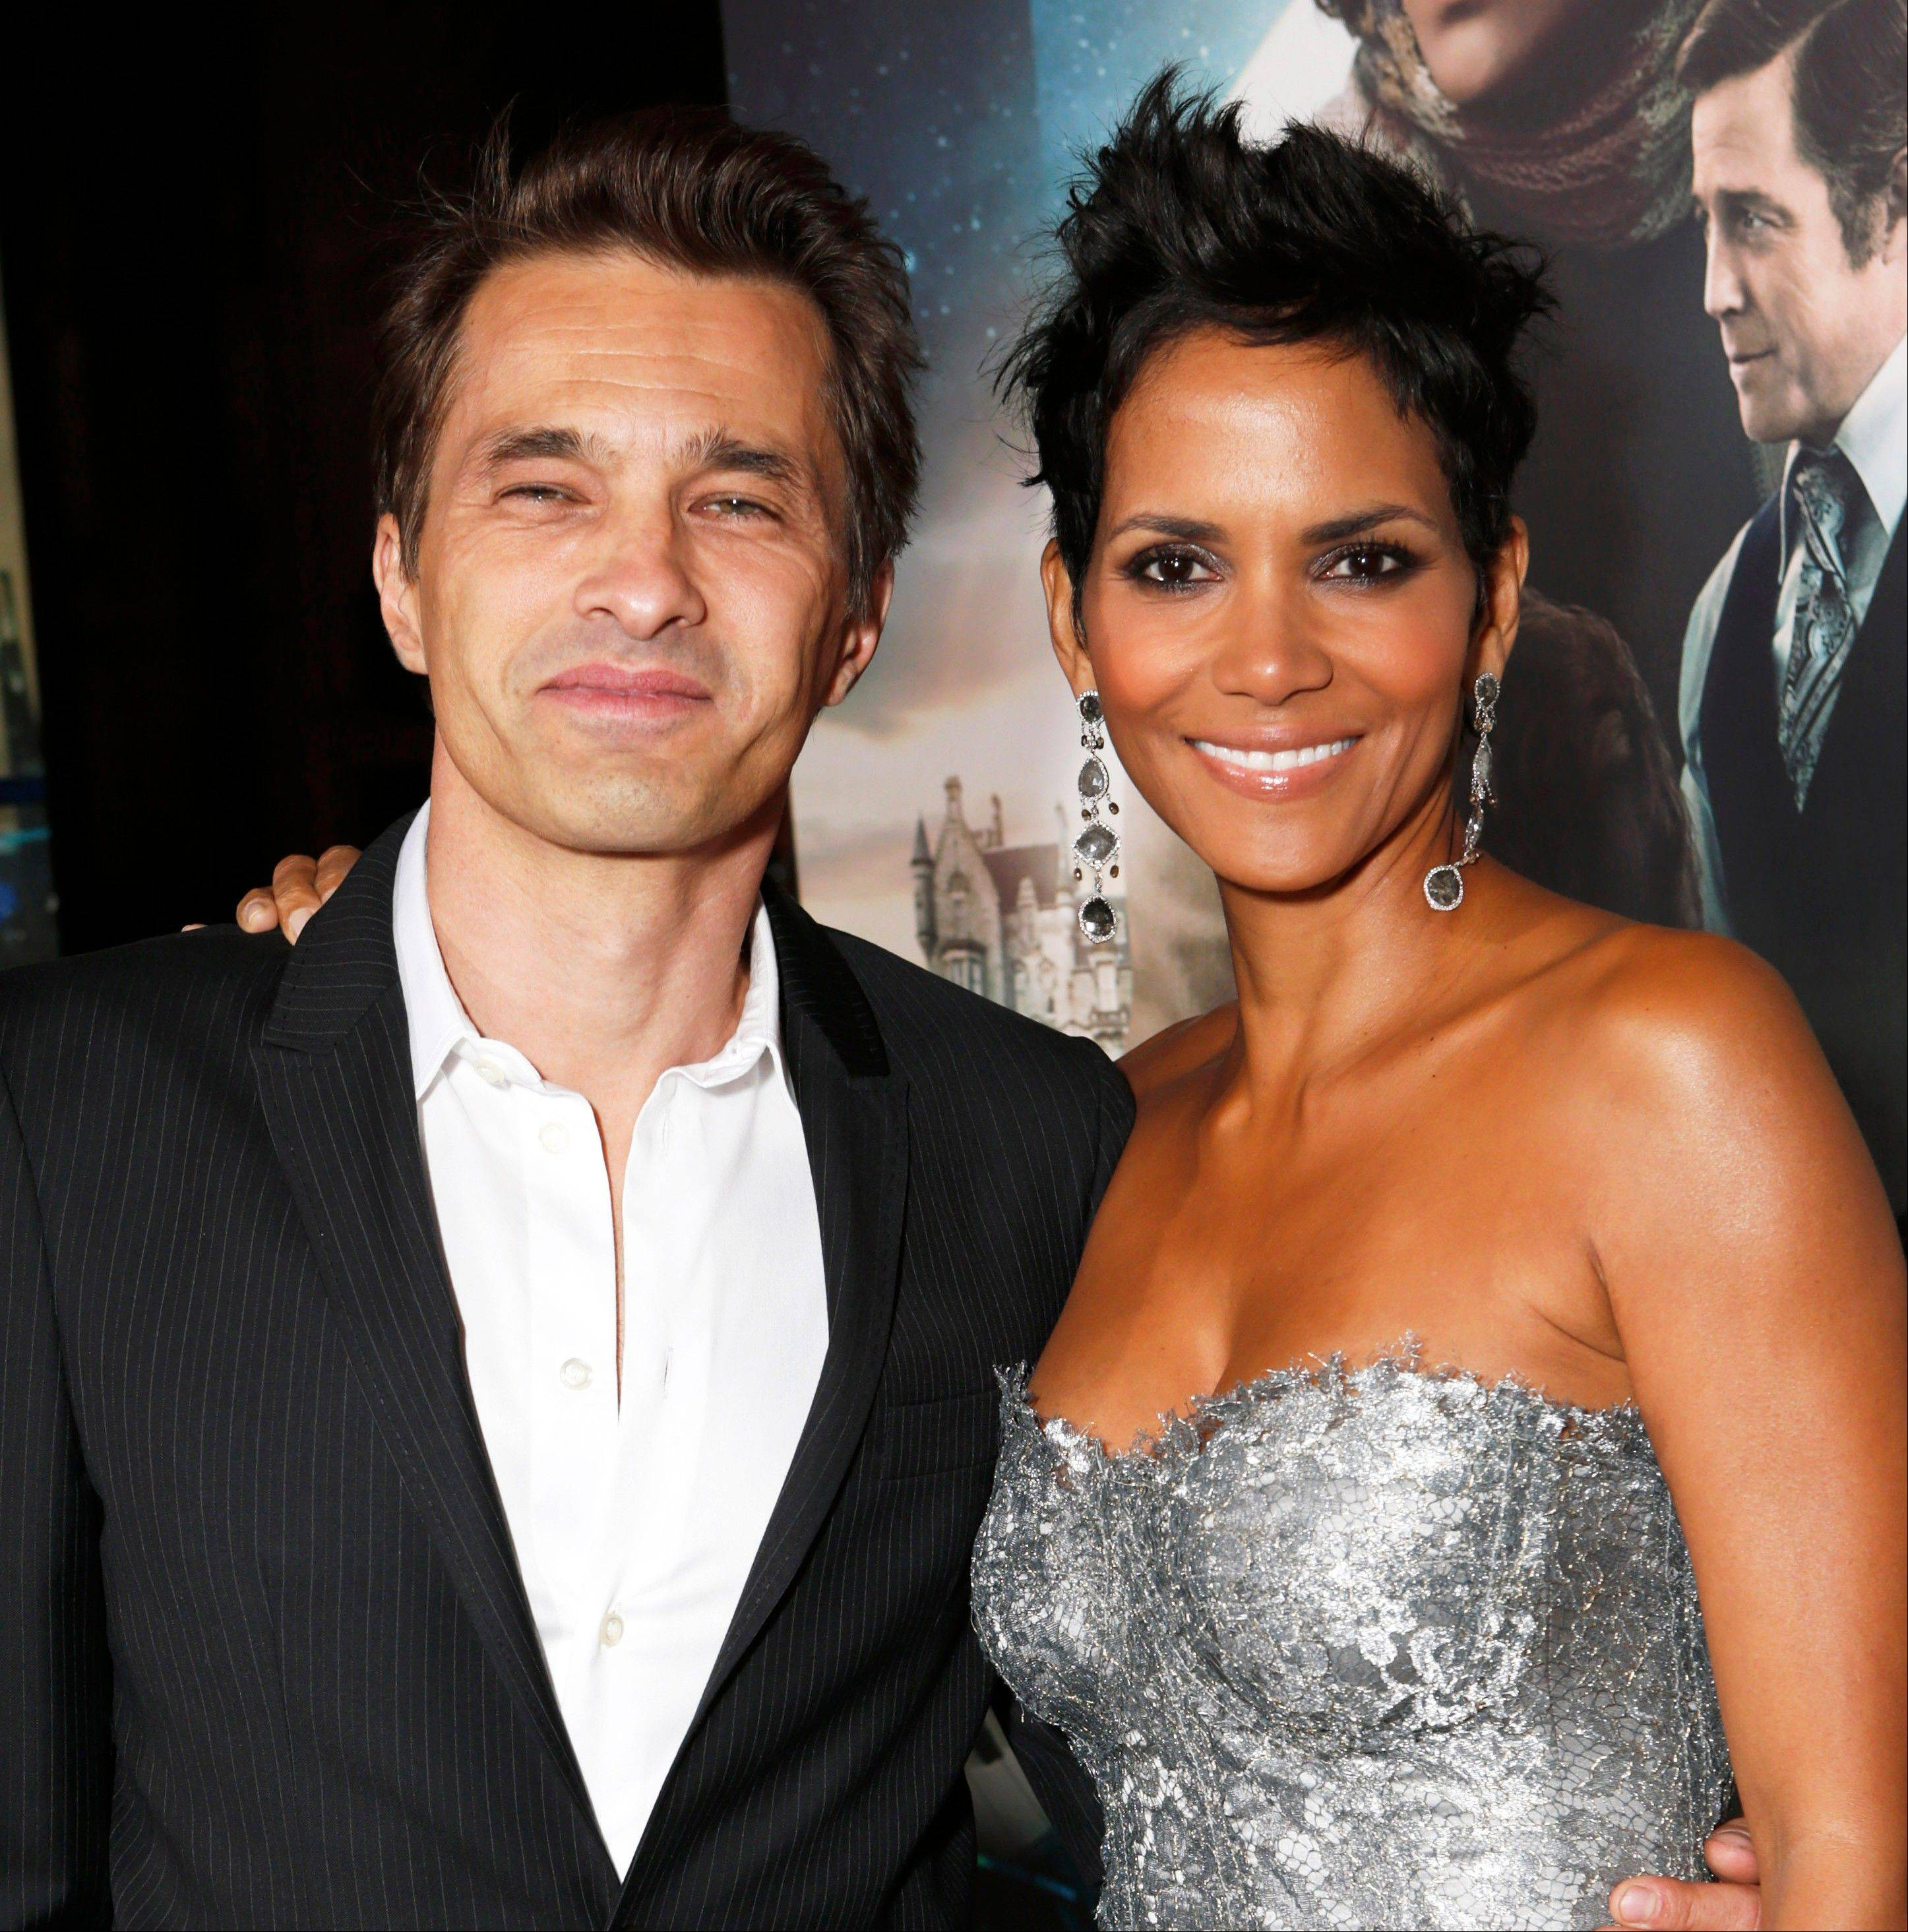 Actors Olivier Martinez and Halle Berry married at a weekend ceremony in a church near a chateau in France's Burgundy region. The owner of the Chateau de Vallery, where the couple stayed with their 60 guests, said on Sunday that the betrothal a day earlier ended with a dinner and fireworks display.